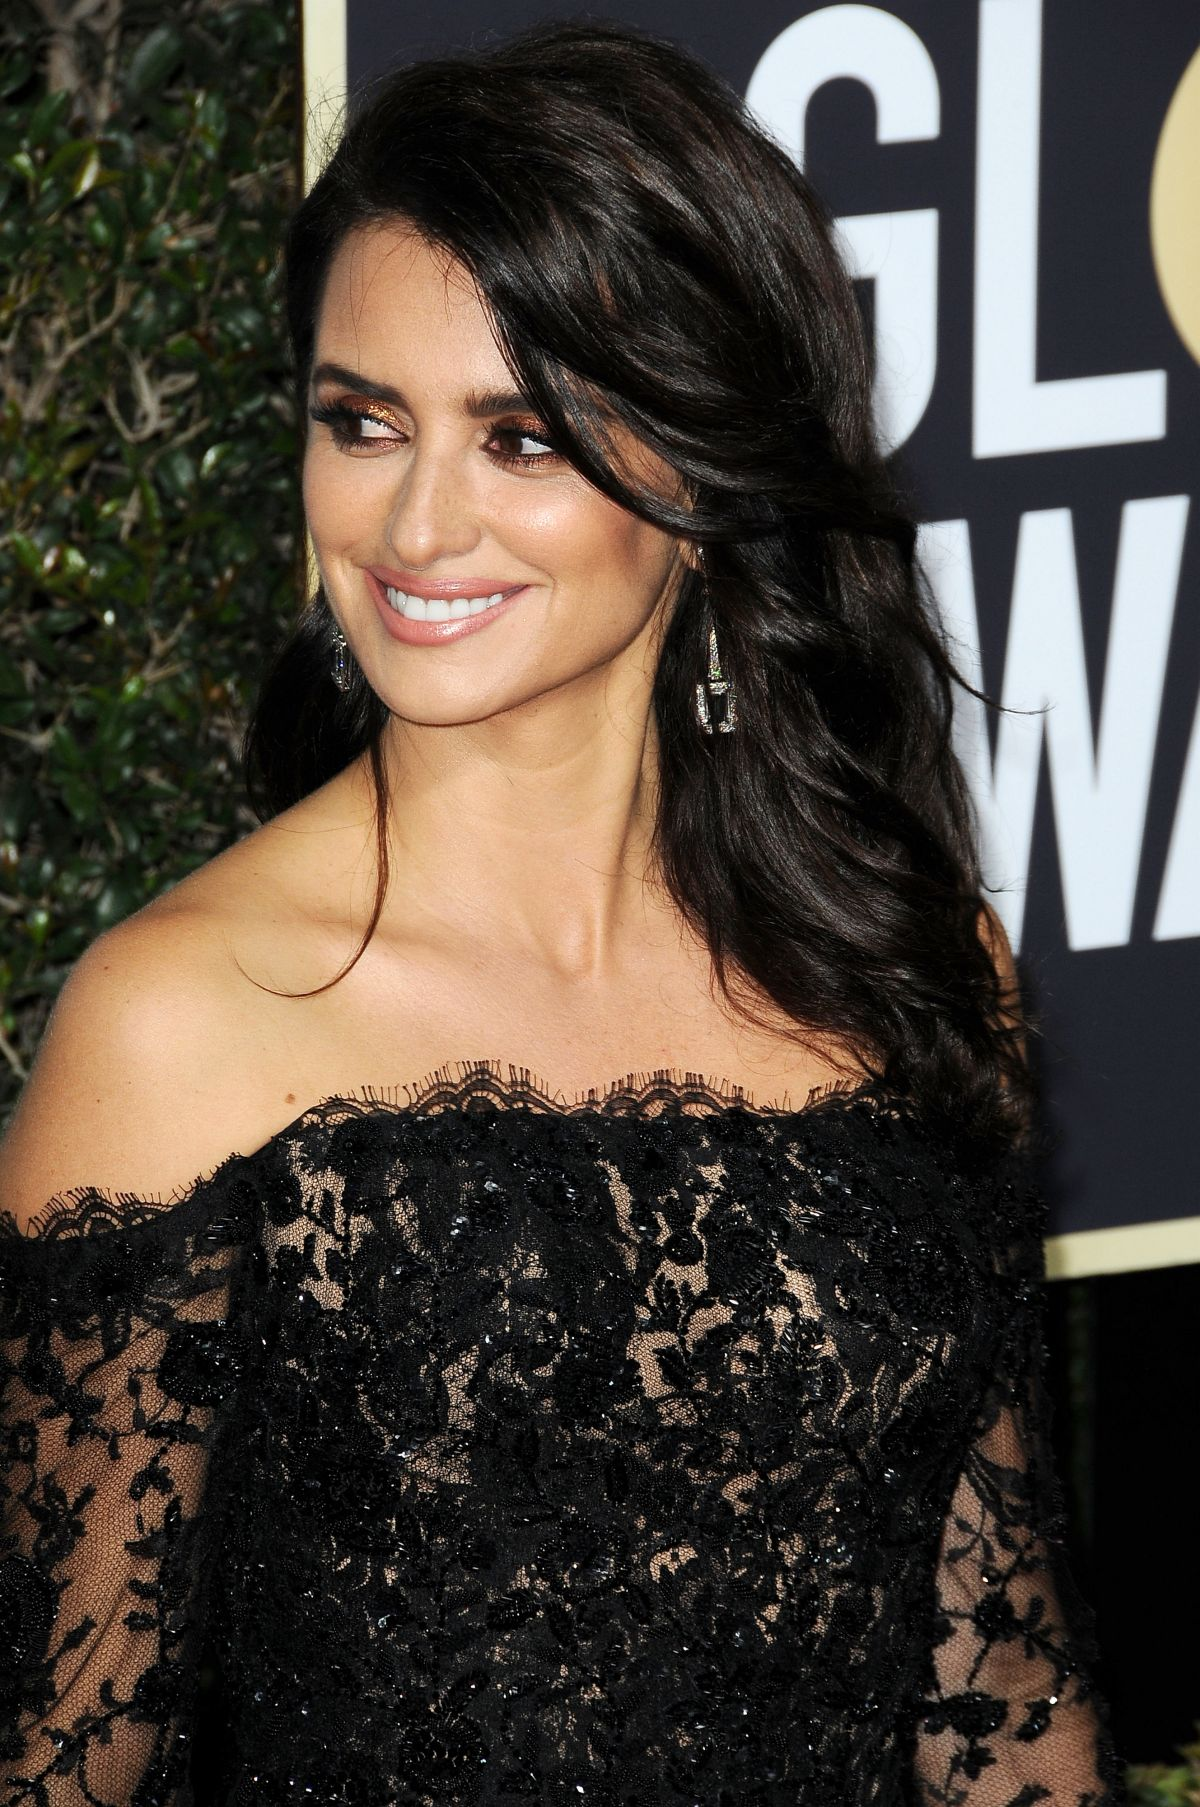 PENELOPE CRUZ at 75th Annual Golden Globe Awards in ... Penelope Cruz